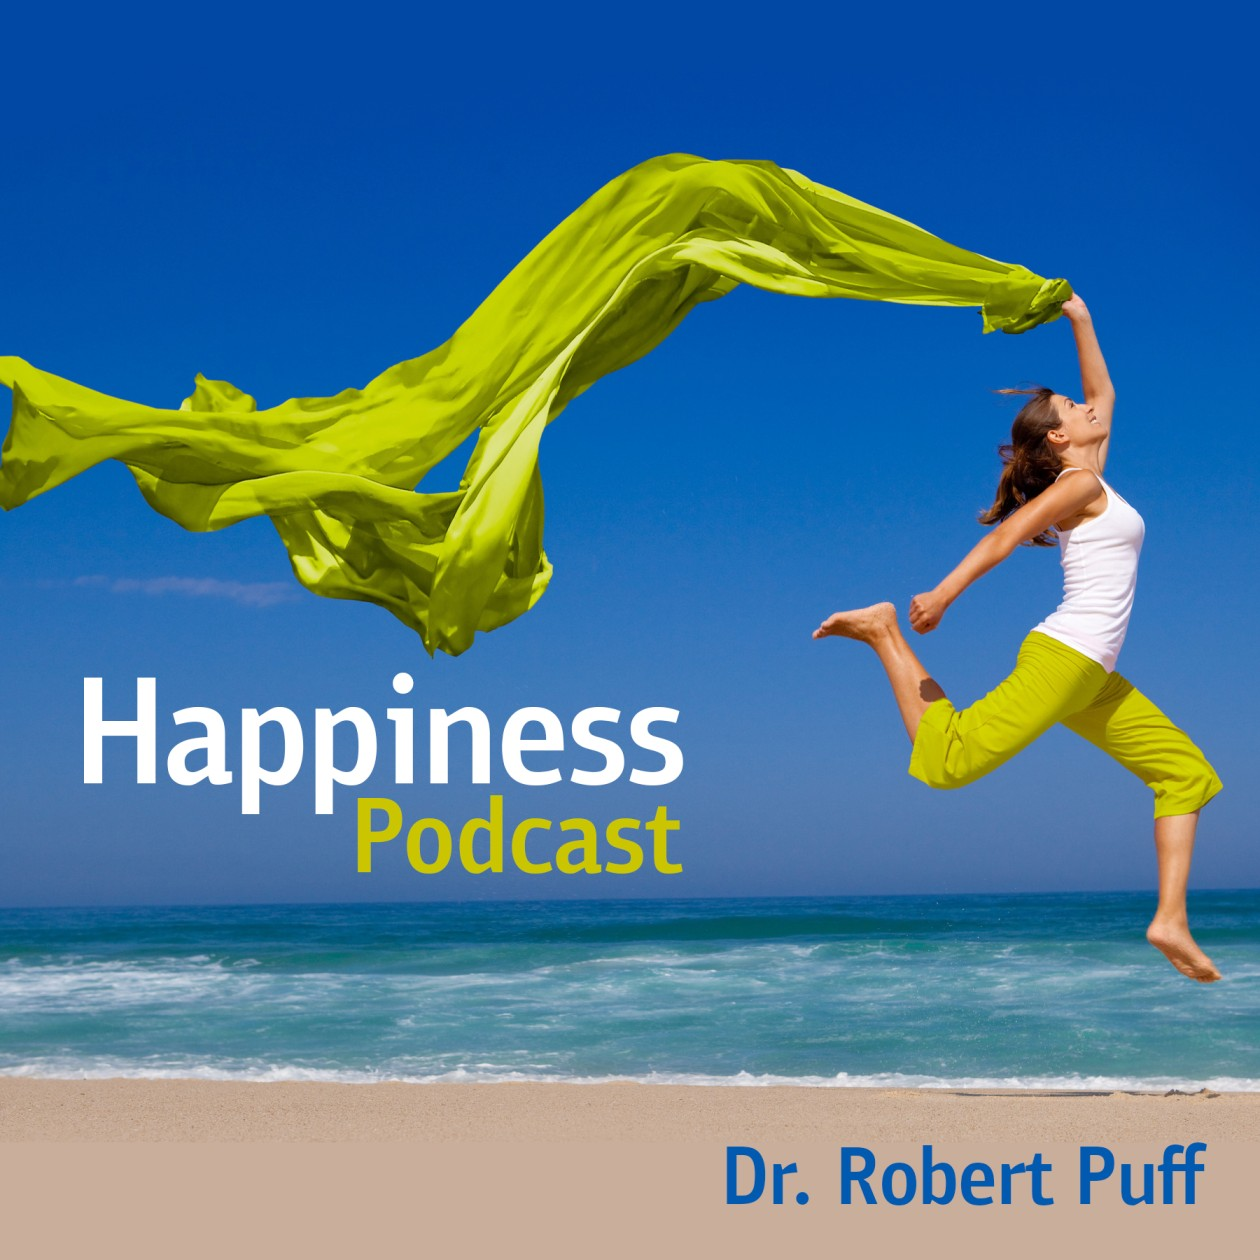 Dr. Robert Puff's Happiness Podcast